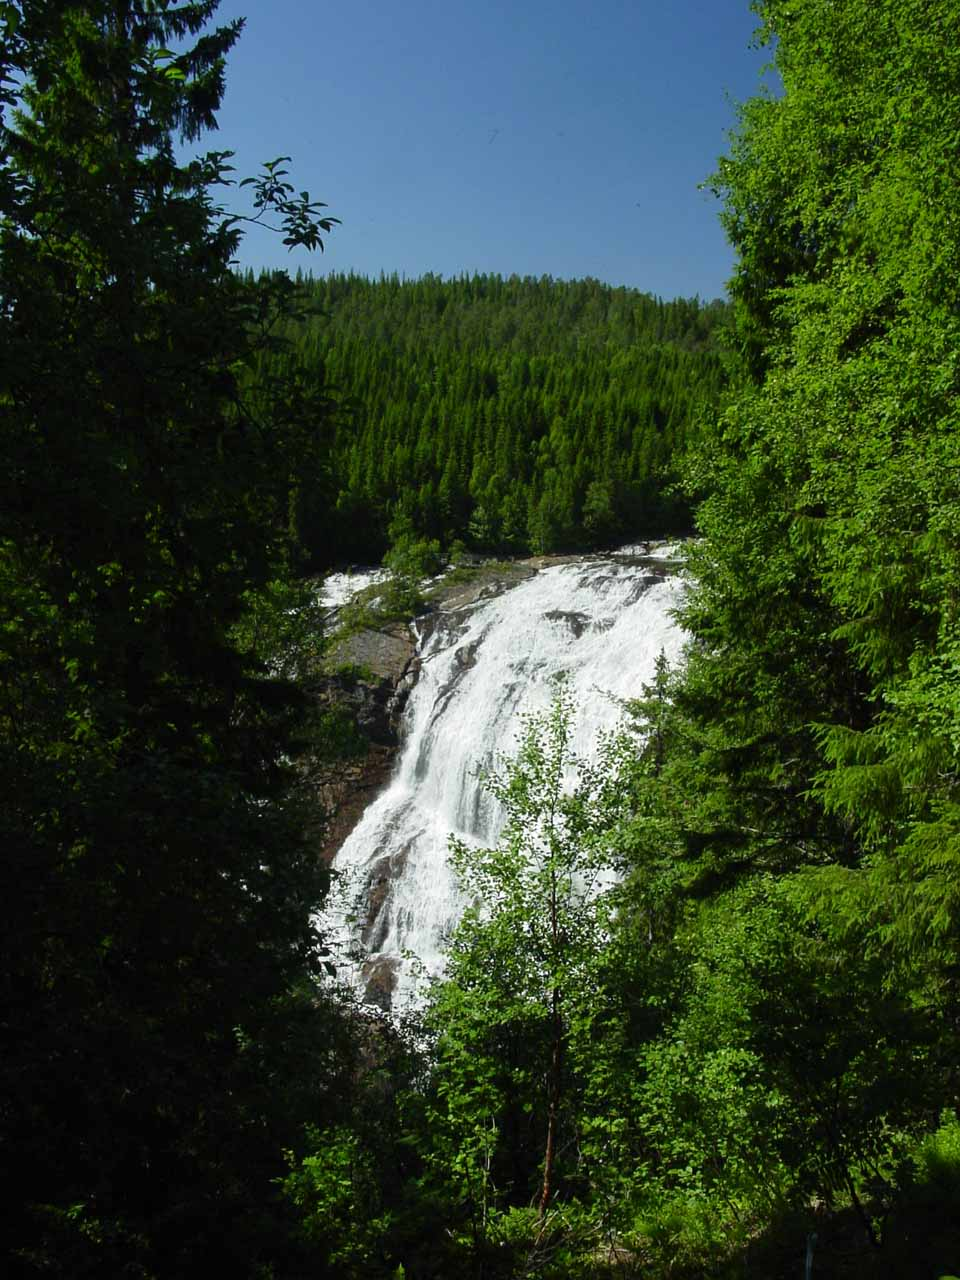 Close by Formofossen was this waterfall called Grongstadfossen, which was another one of the falls we had seen in Nord-Trøndelag County